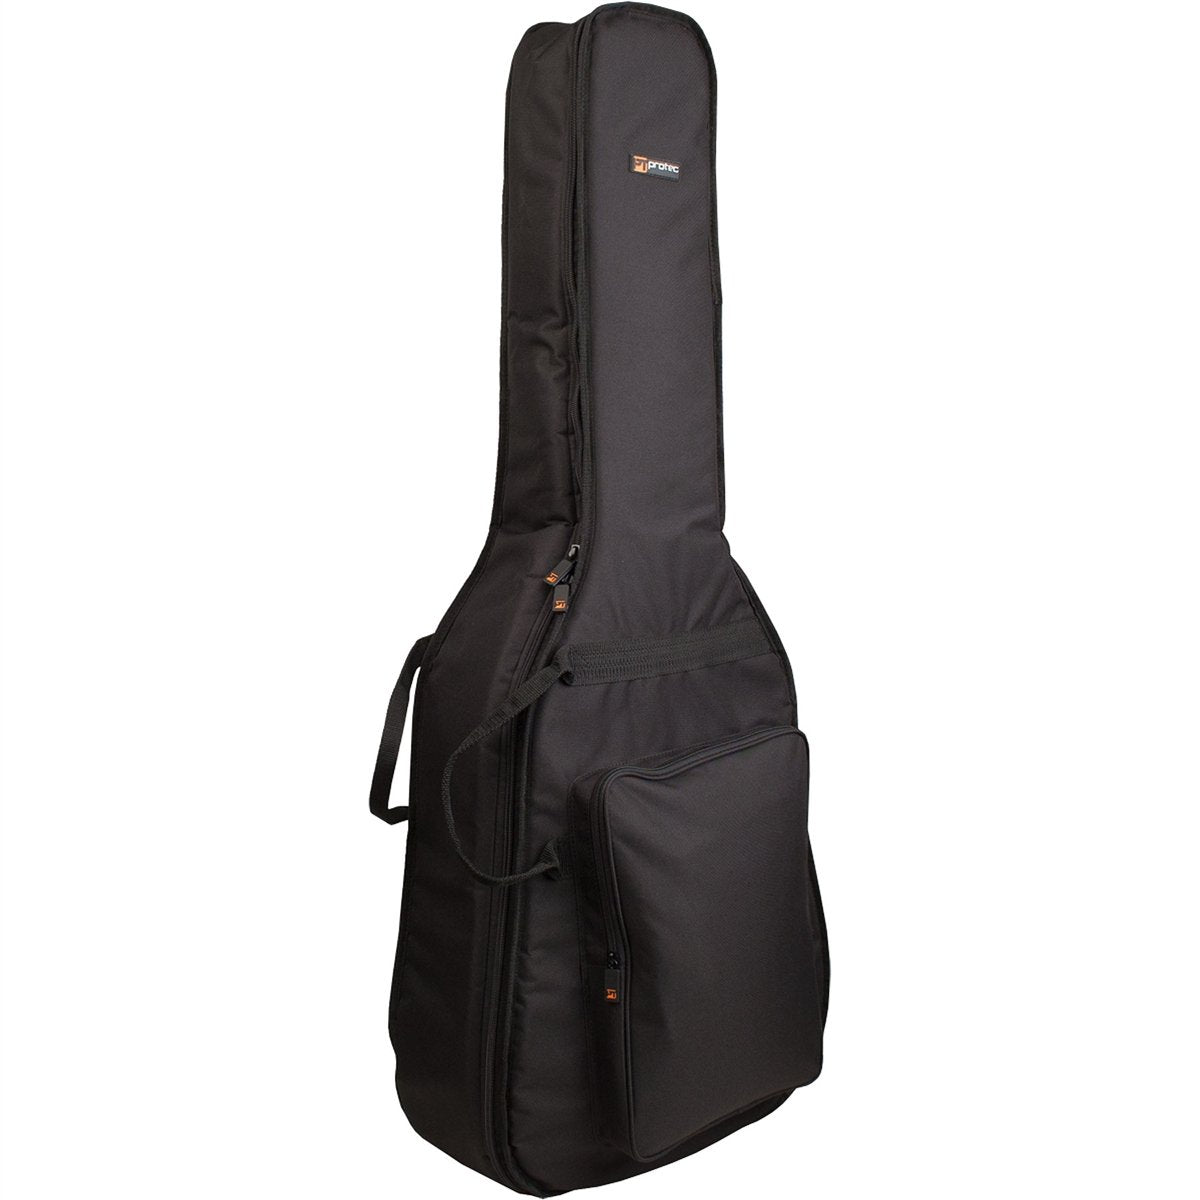 PROTEC 3/4 Acoustic Gig Bag - Silver Series